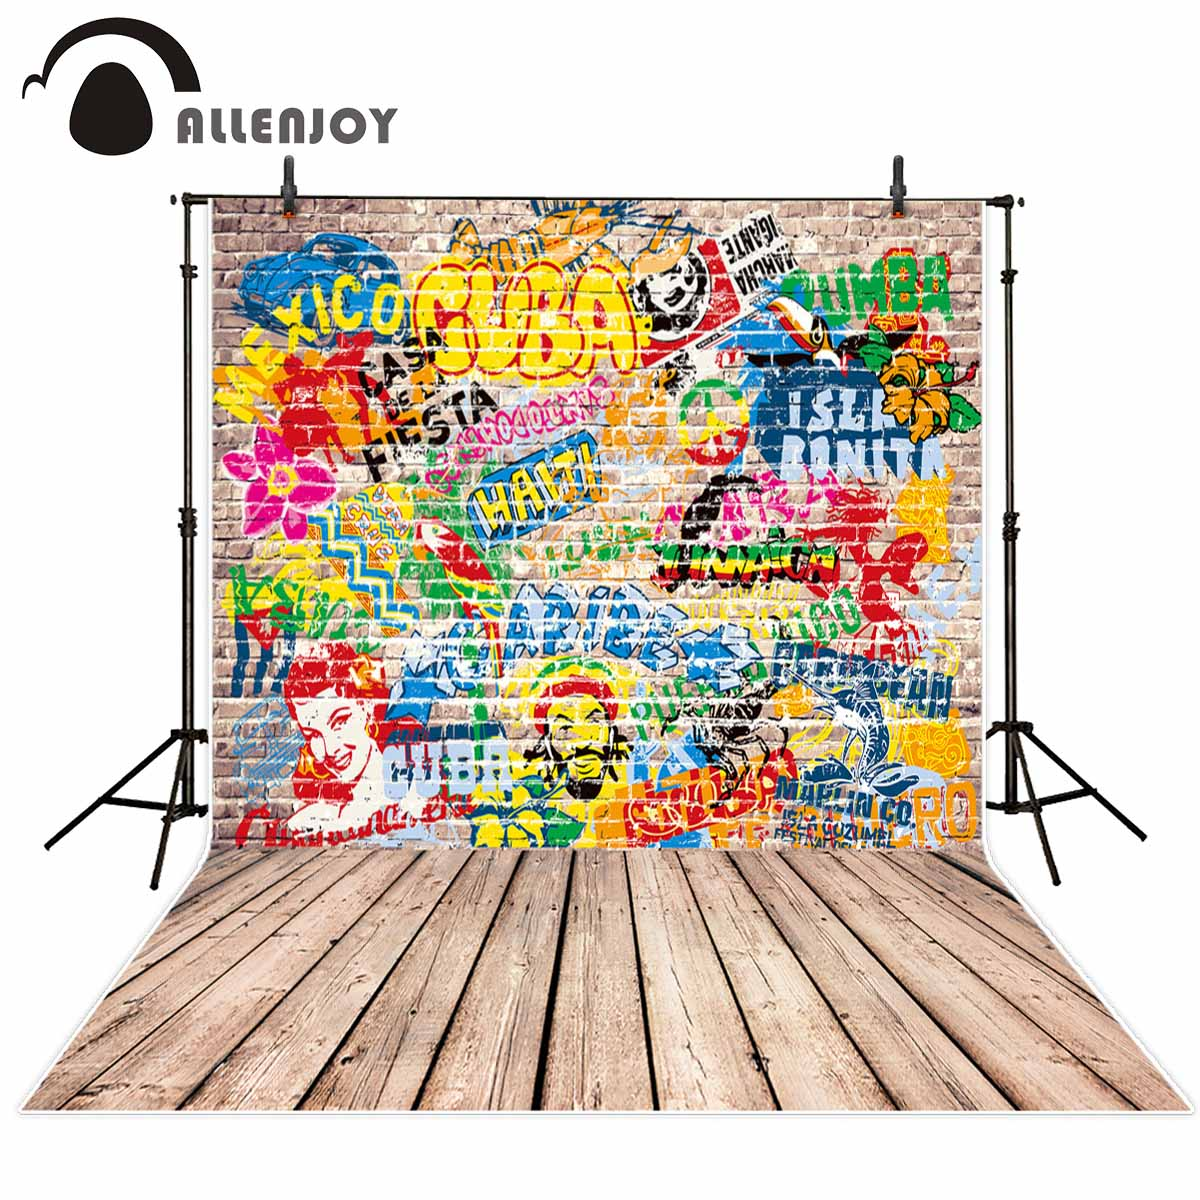 Allenjoy photo background graffiti Brick wall wood floor colorful faces countries background for studio for photographing faces faces first step